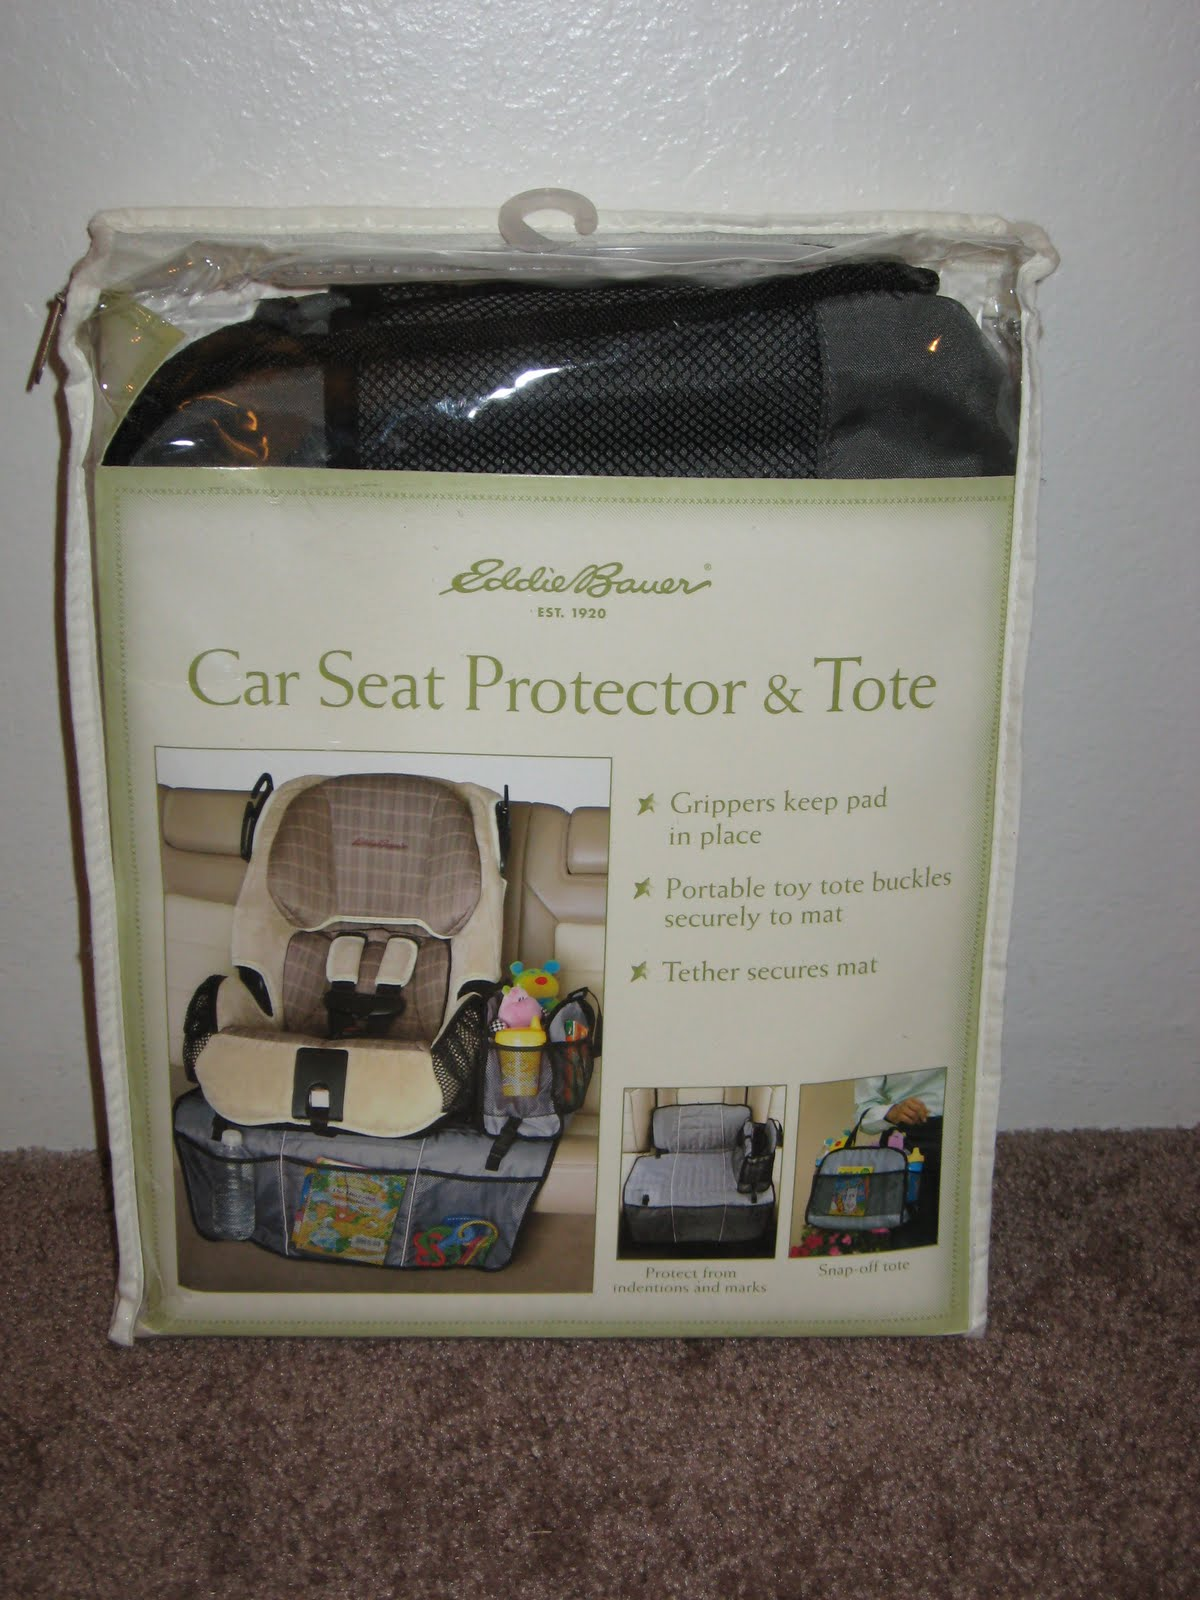 Eddie Bauer Car Seat Protector And Tote